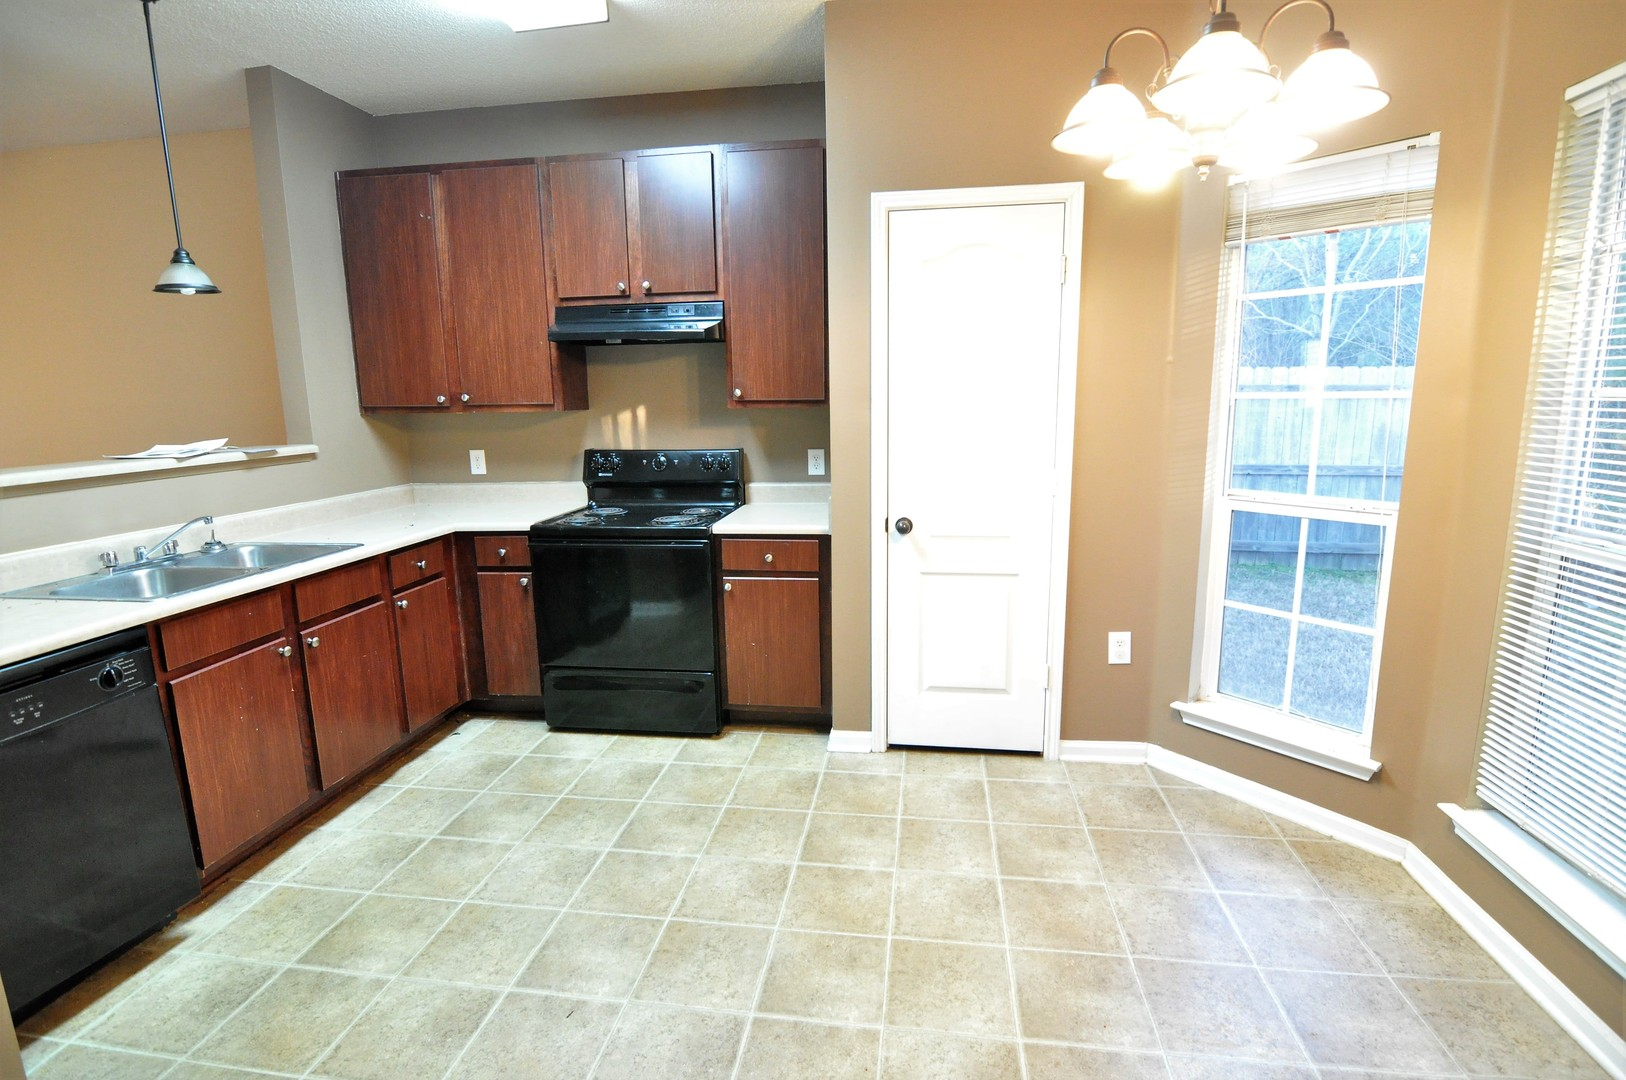 FOR RENT IN ELMORE! 2 BED 1 BATH AT 24 PINE MEADOW CIRCLE